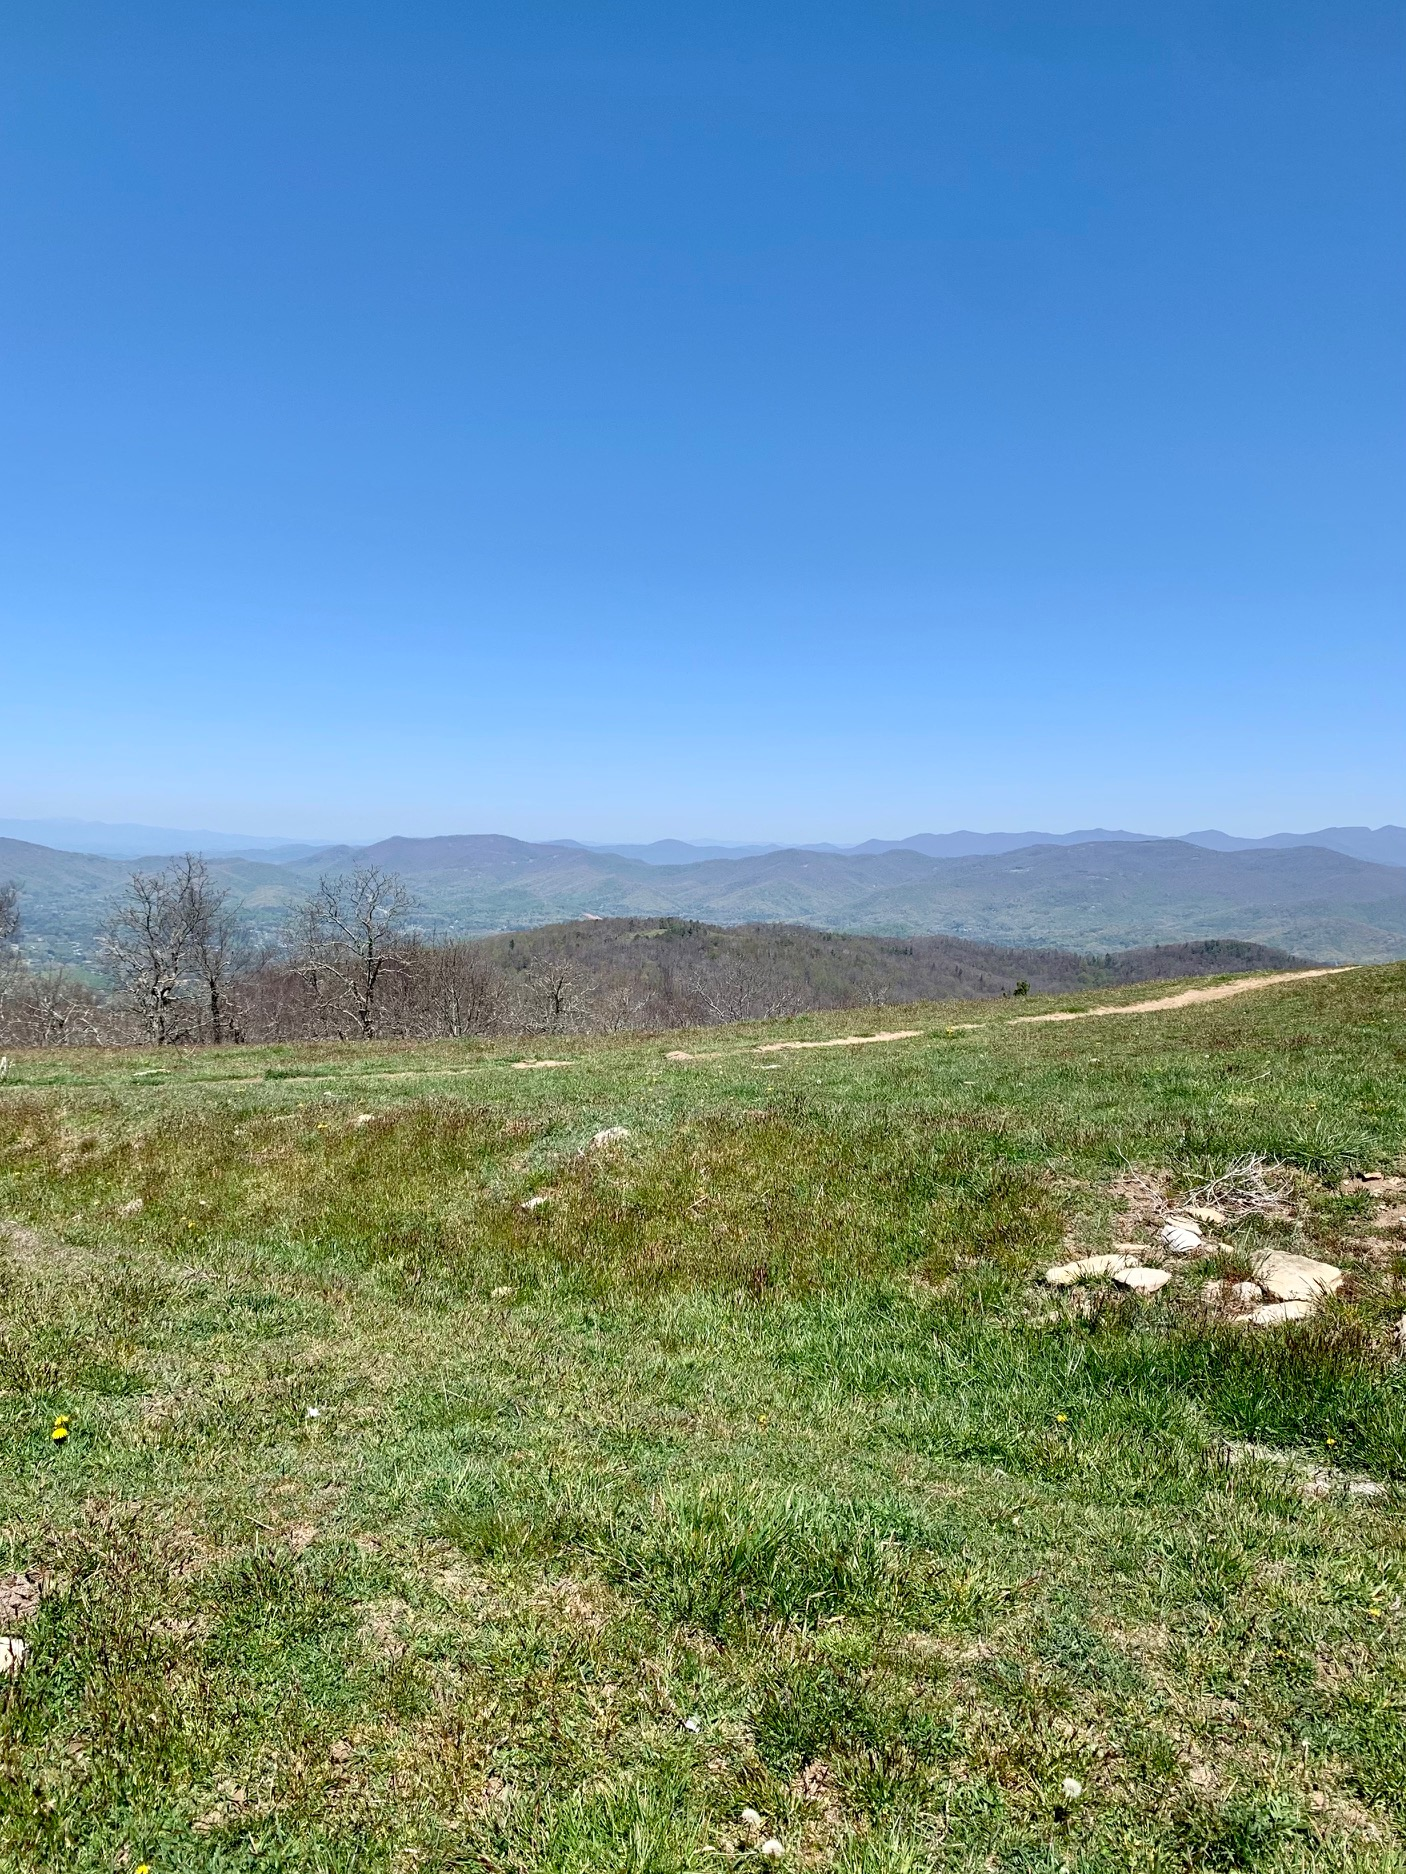 green grassy meadow with view of distance mountains and blue skies